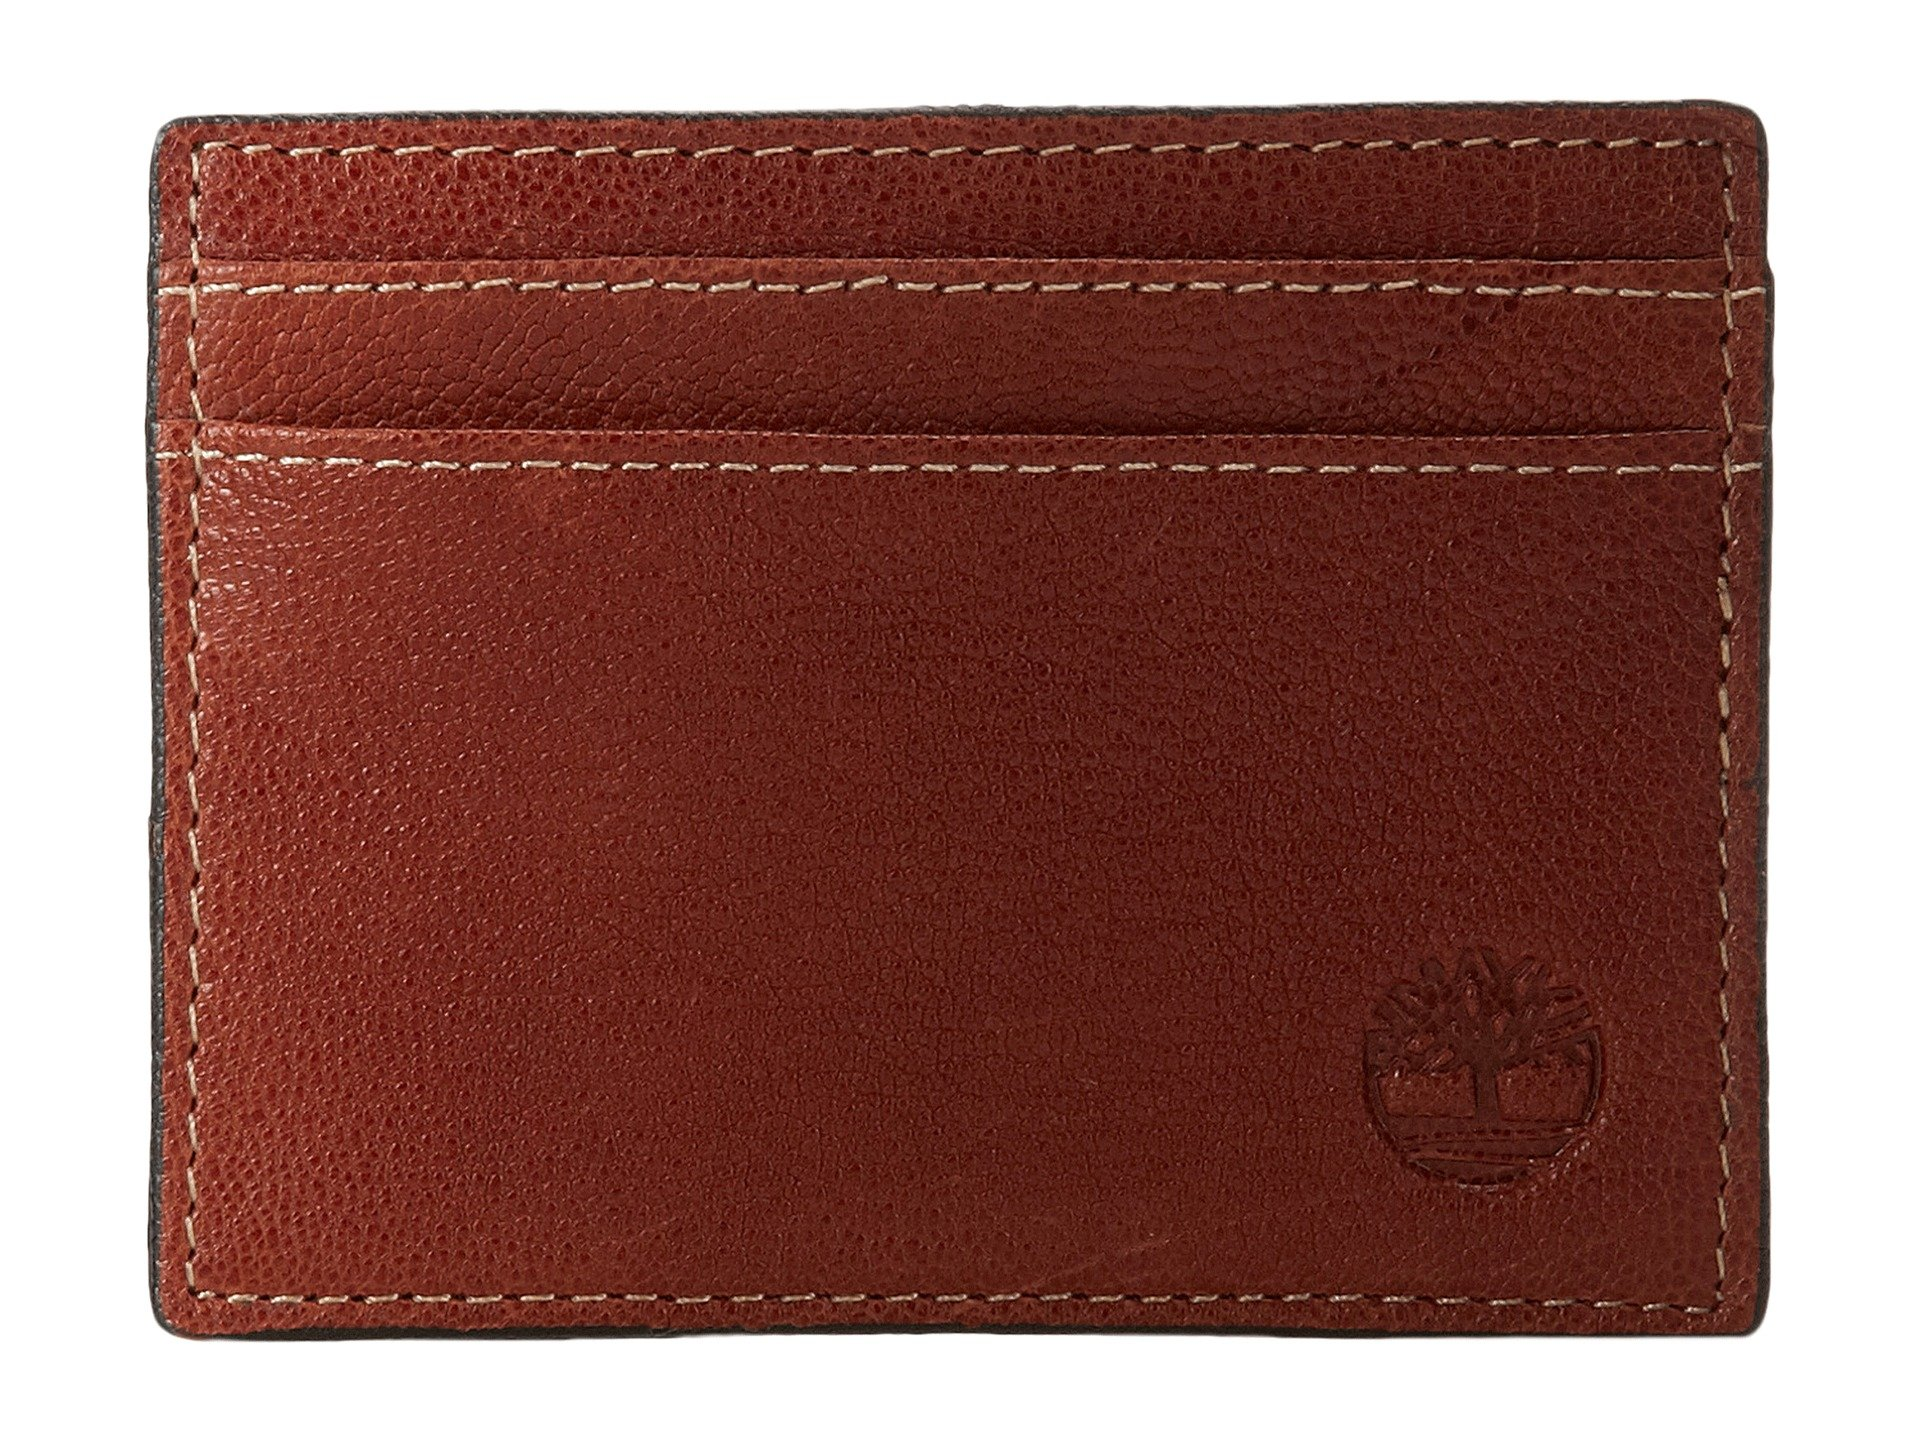 Monedero para Hombre Timberland Cavalieri Leather Card Carrier  + Timberland en VeoyCompro.net